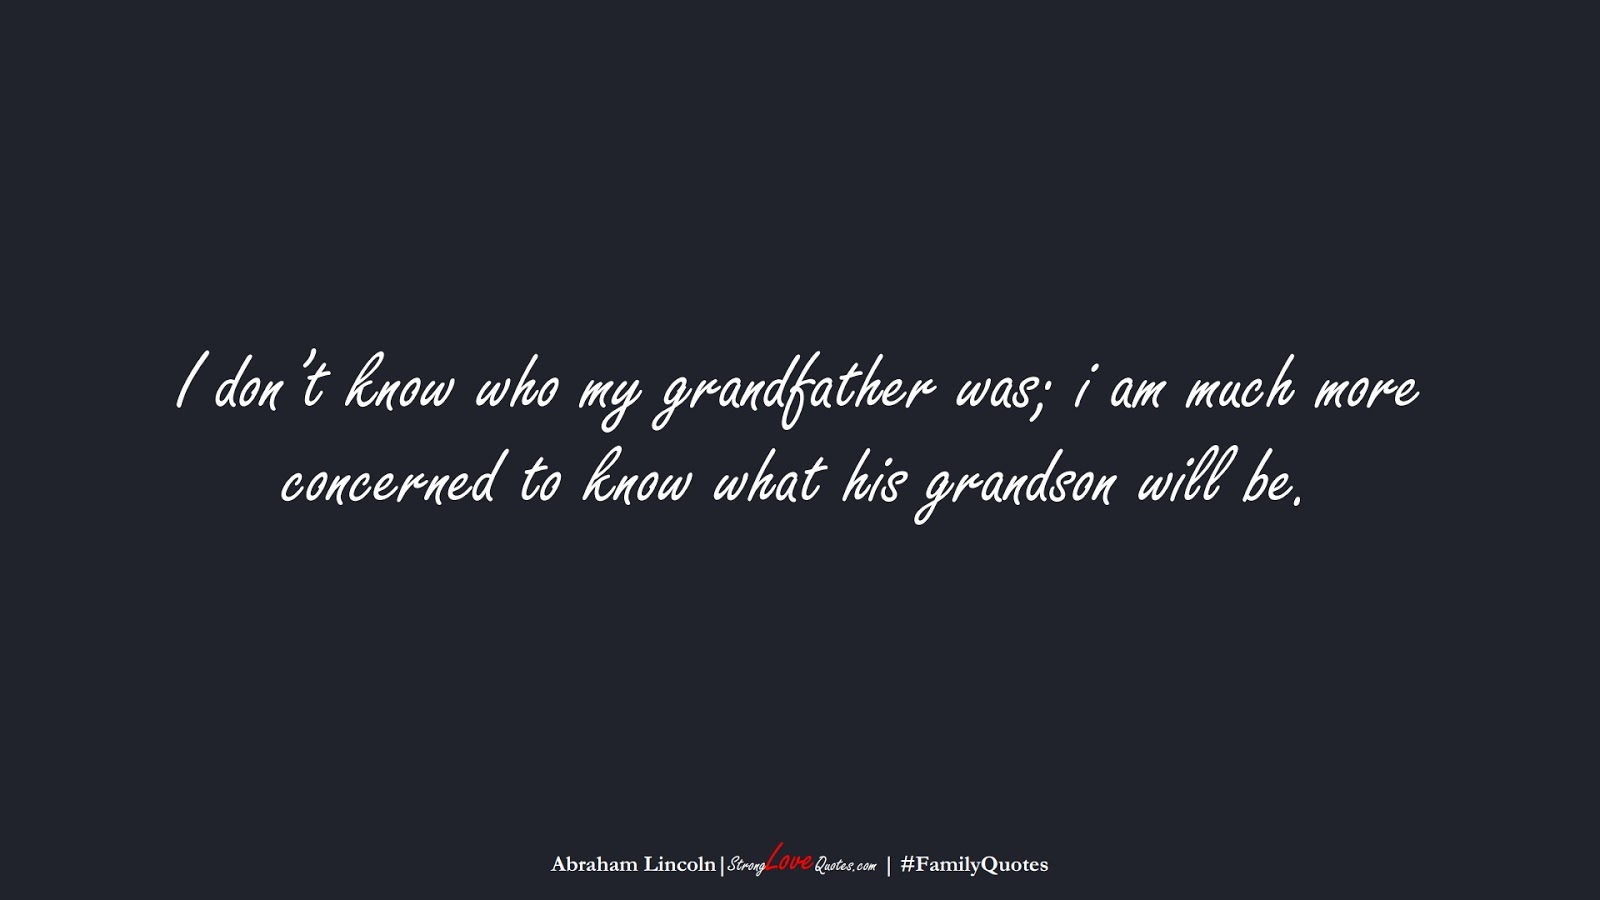 I don't know who my grandfather was; i am much more concerned to know what his grandson will be. (Abraham Lincoln);  #FamilyQuotes